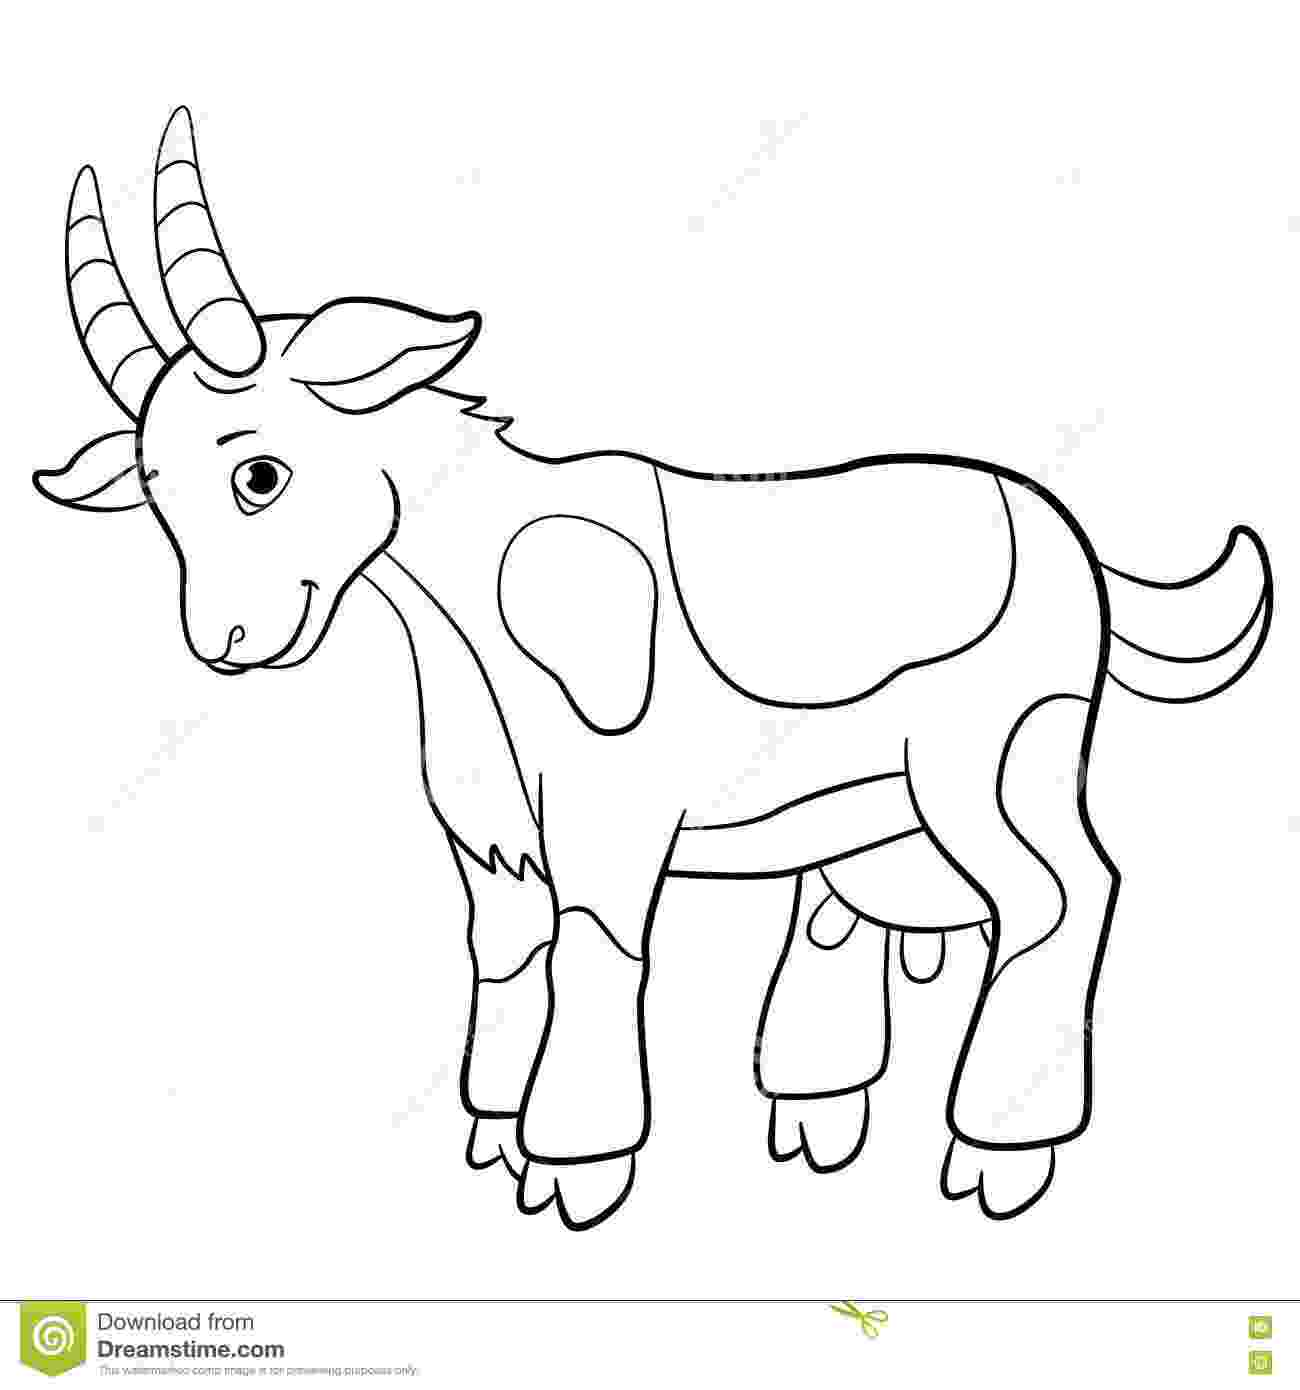 coloring pages of goats free printable goat coloring pages for kids coloring pages of goats